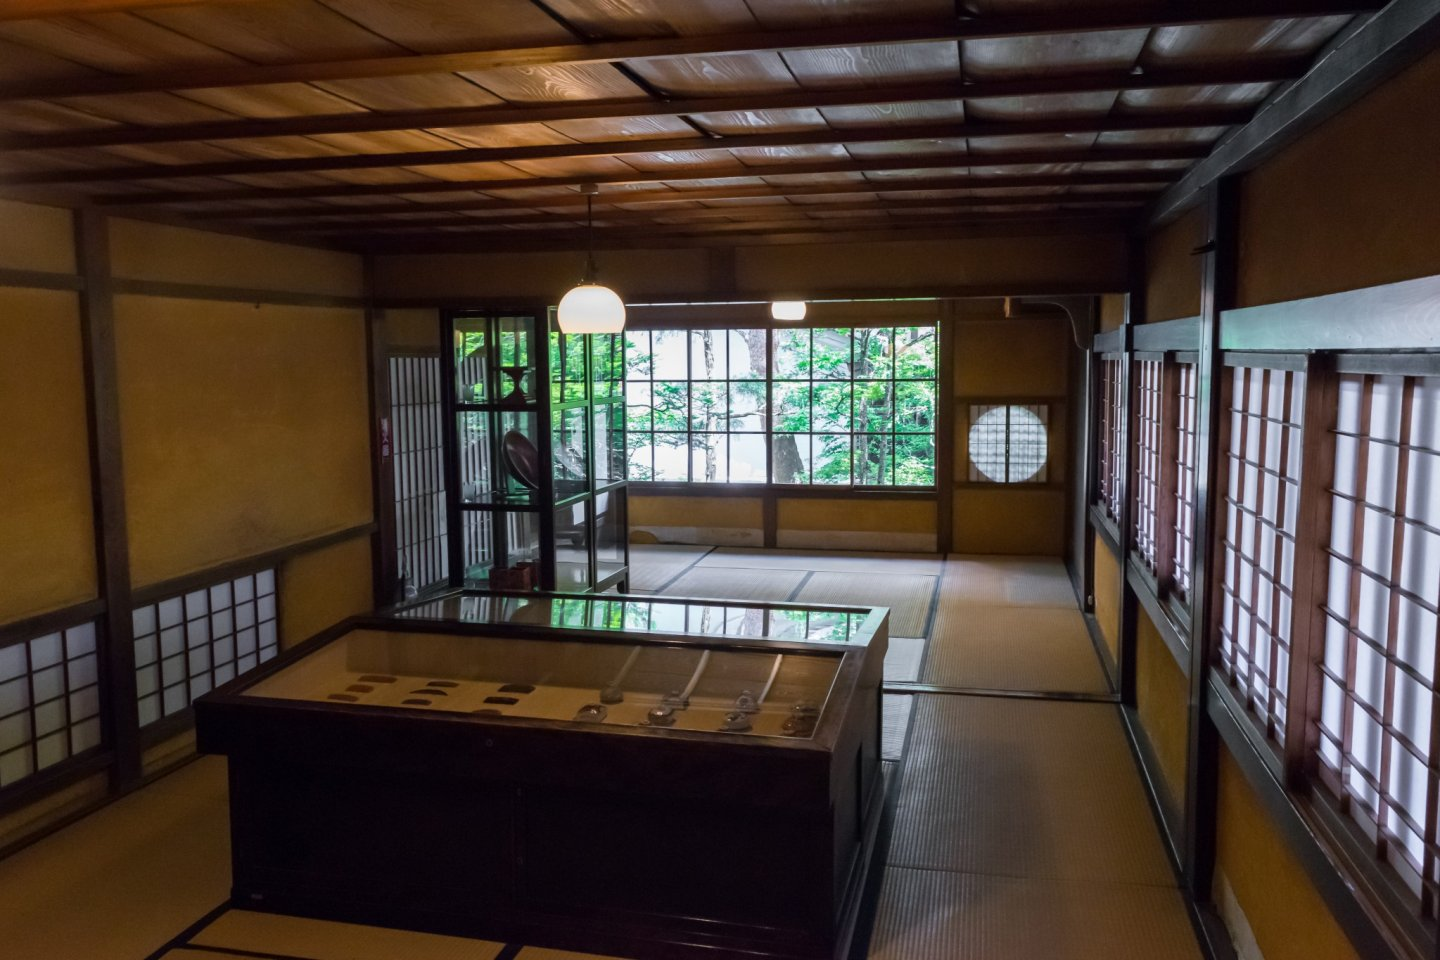 Inside the Kusakabe Mingei-kan.